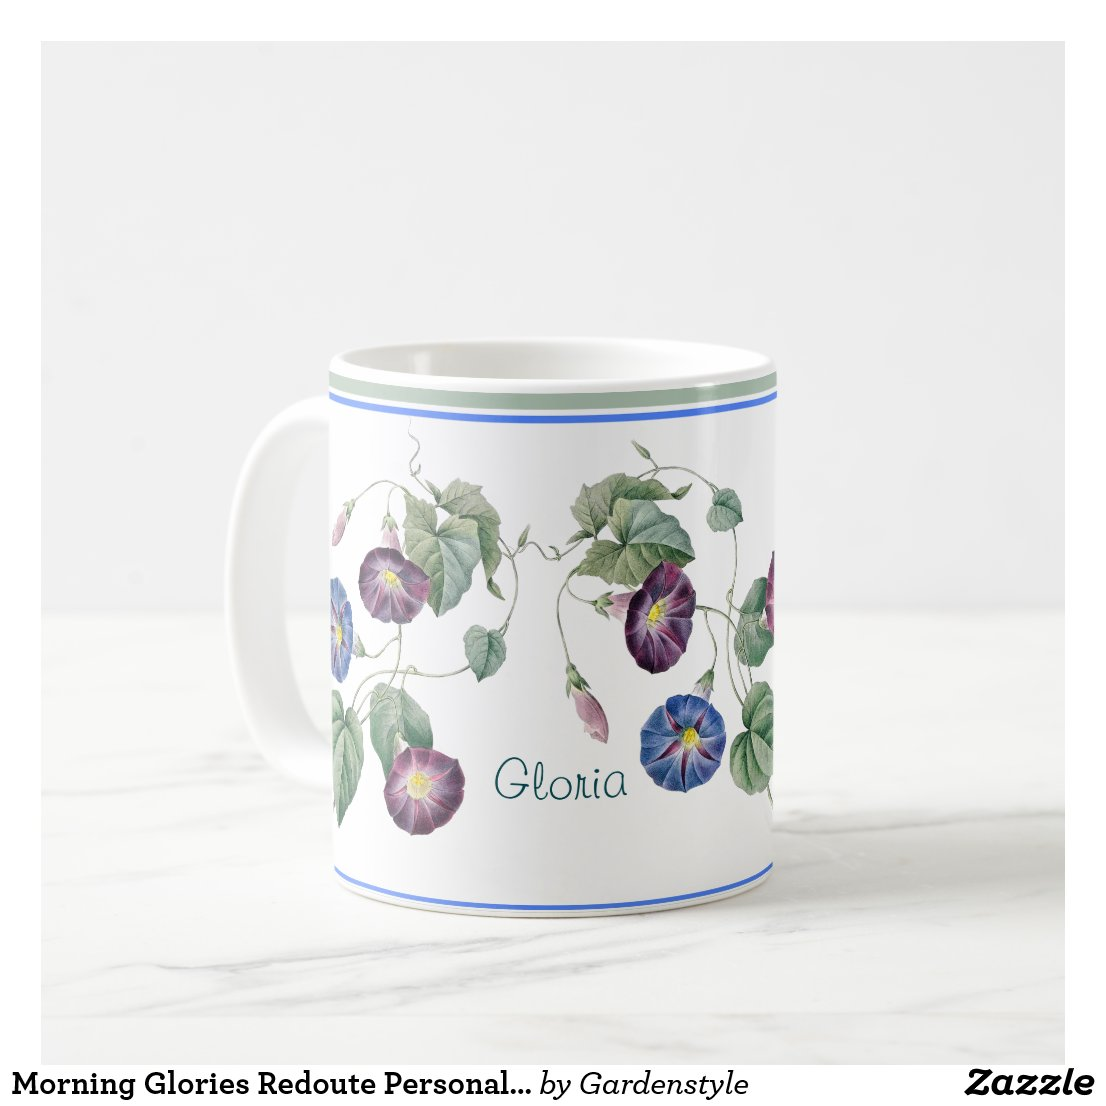 Morning Glories Redoute Personalized Coffee Mug